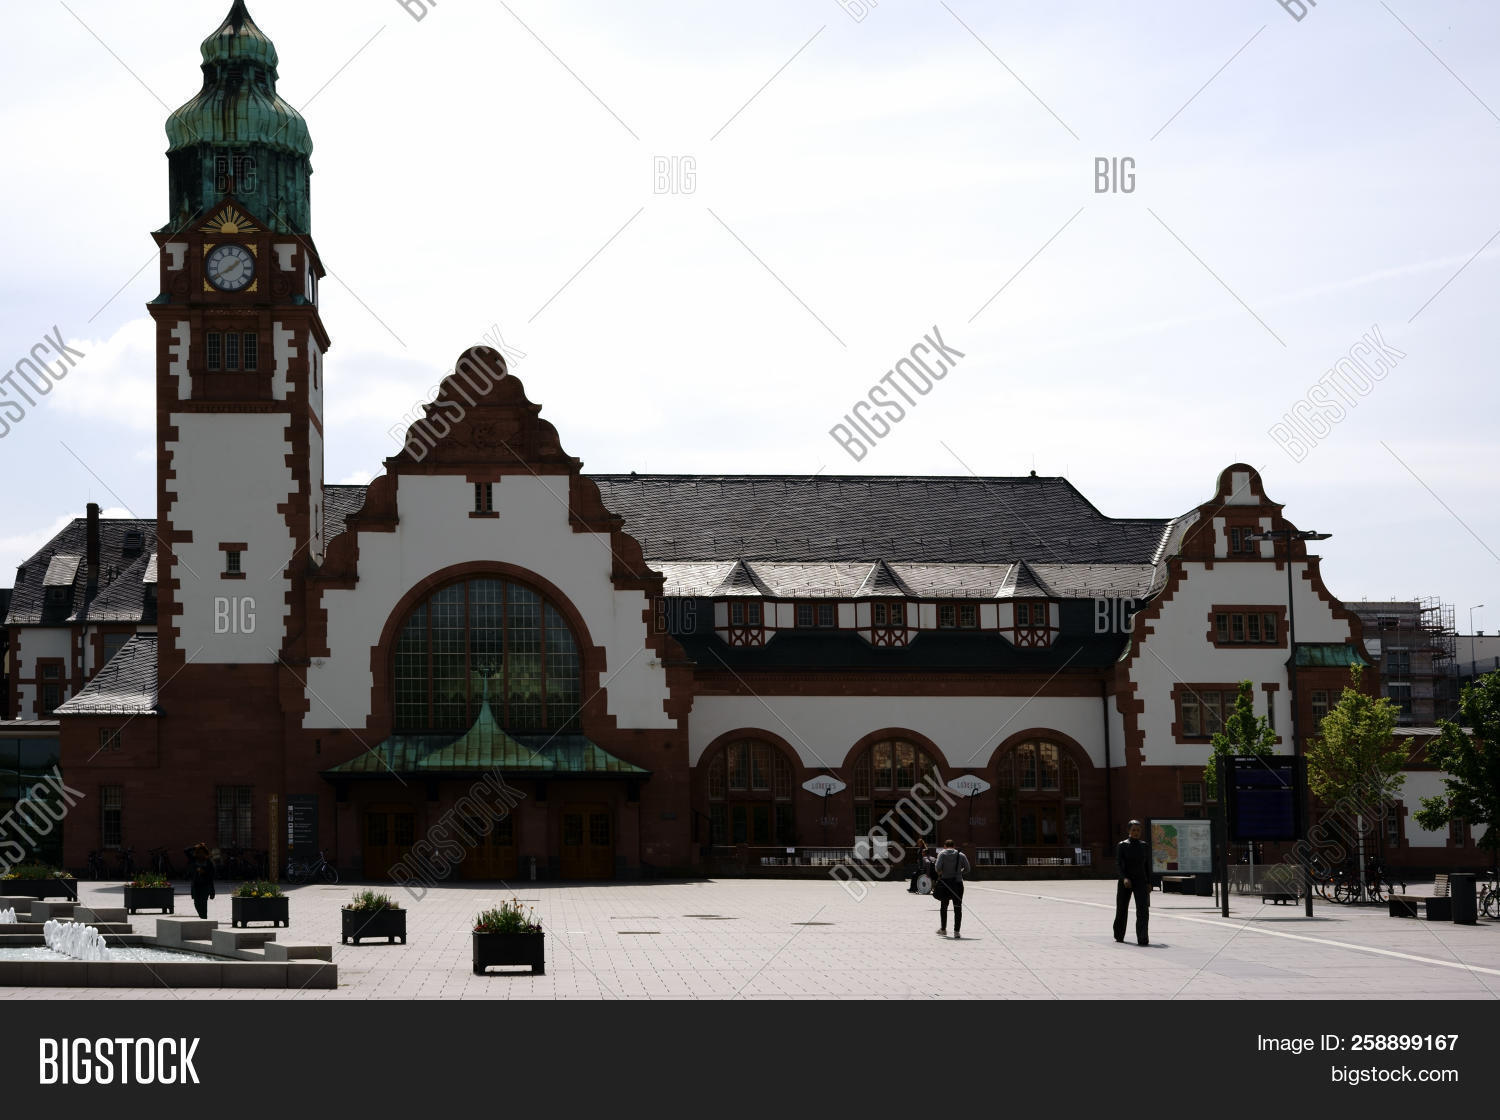 Bad Homburg Bad Homburg Germany Image Photo Free Trial Bigstock